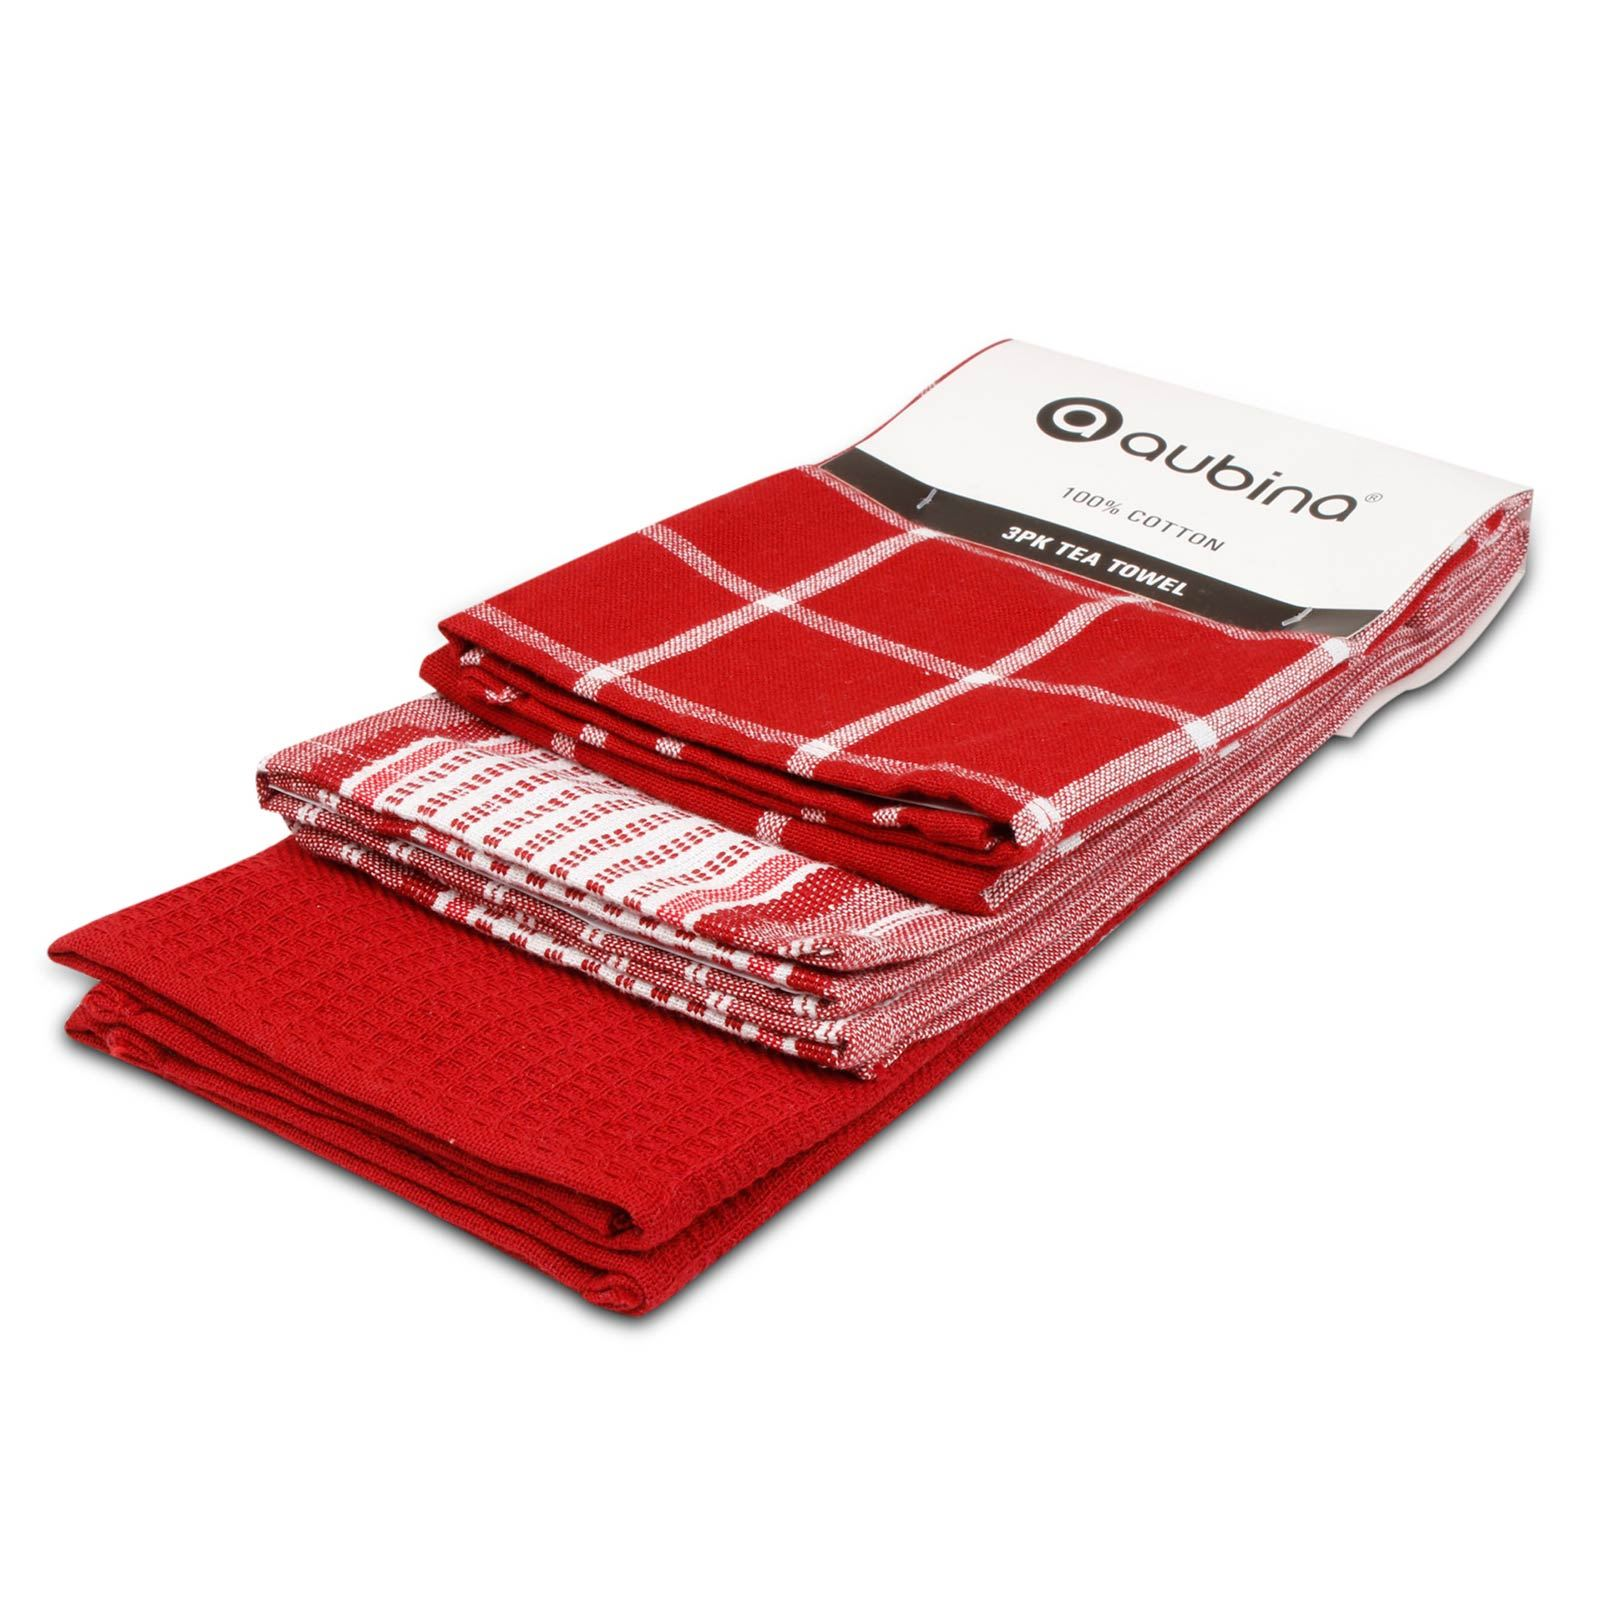 Pack-of-3-Tea-Towels-100-Cotton-Kitchen-Dish-Towel-Drying-Set thumbnail 41